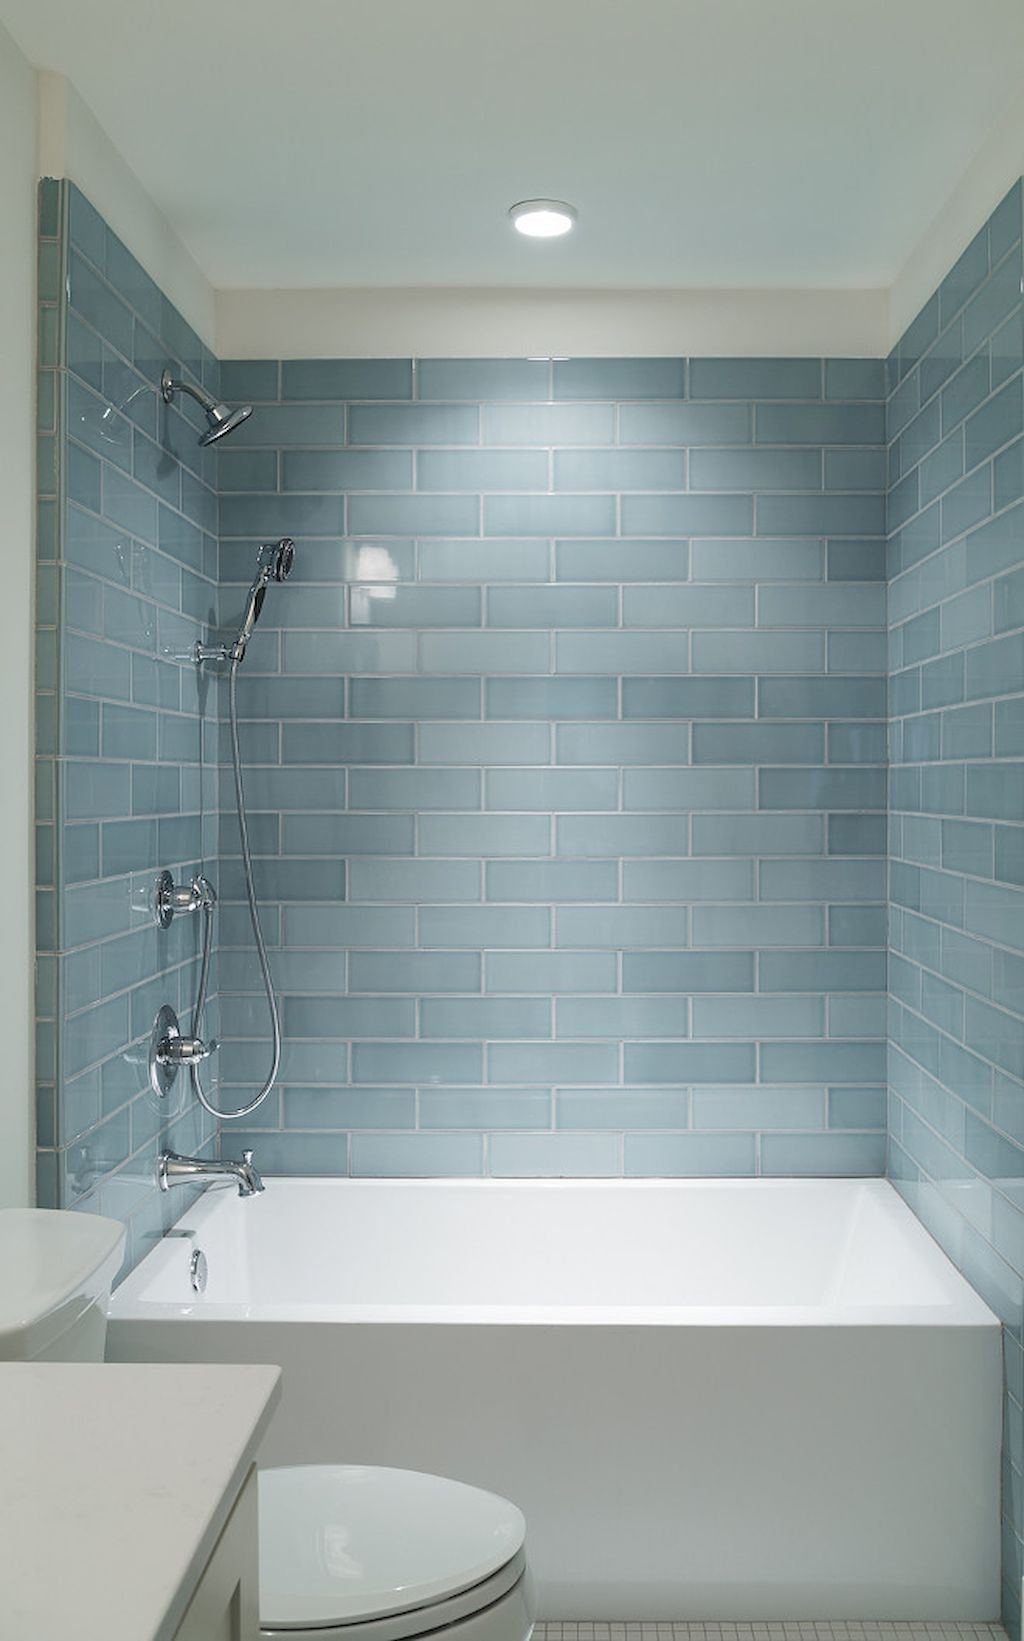 I Love This Deep Tub Gorgeous Subway Tile Small Bathroom Remodel With Bathtub Ideas 39